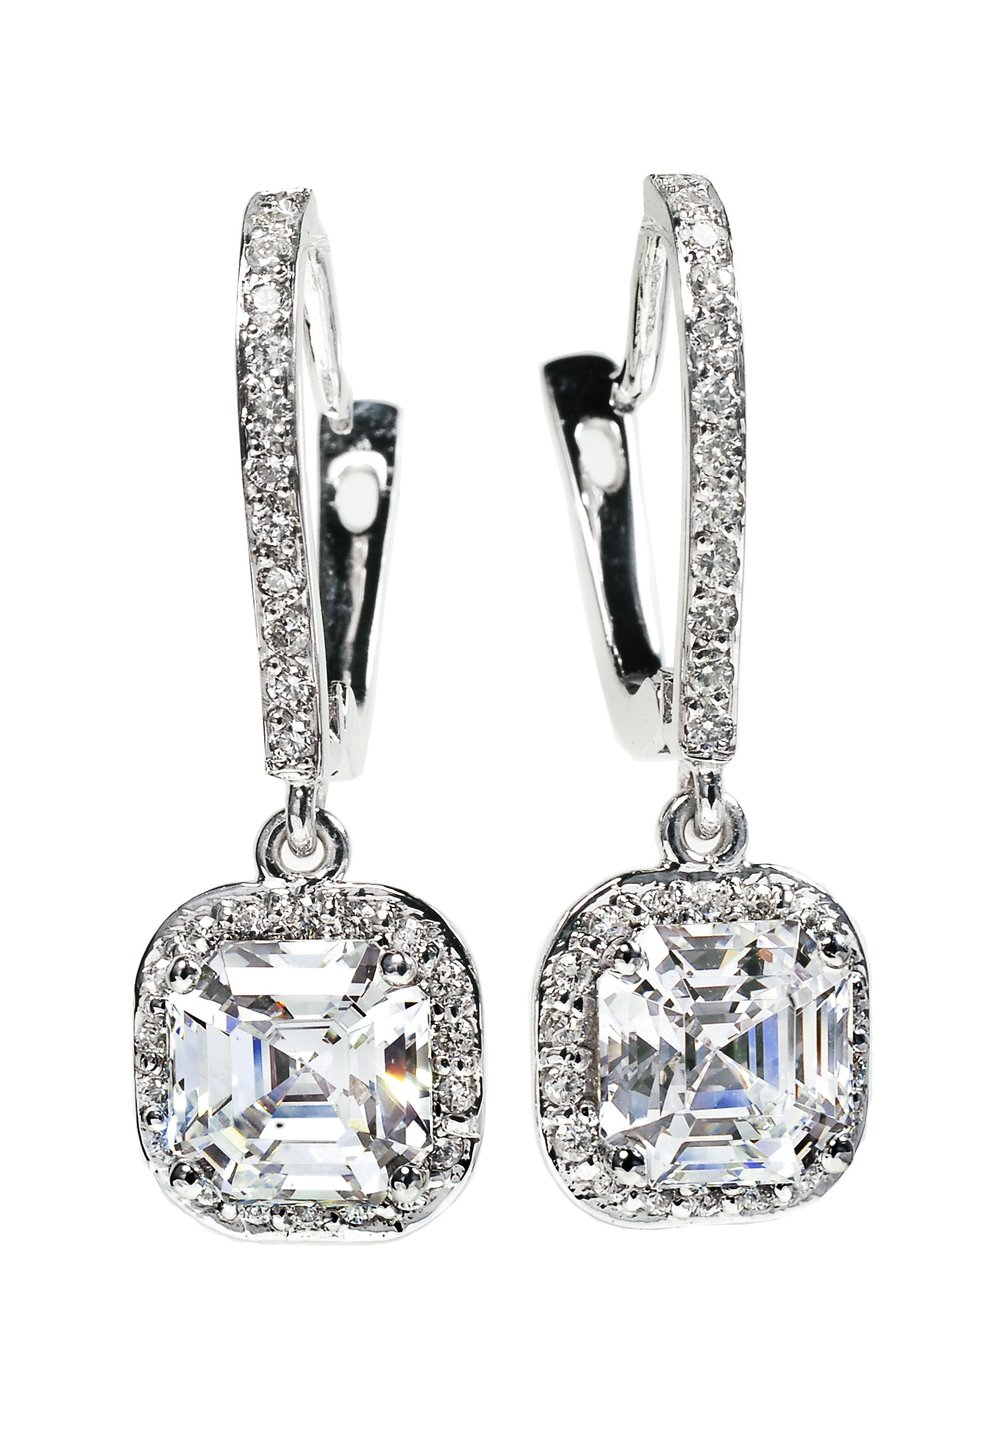 OGI Style 646E CENTER DIAMONDS SIZE ARE AVAILABLE FROM 0.50 CARATS TO 3.00 CARATS EACH